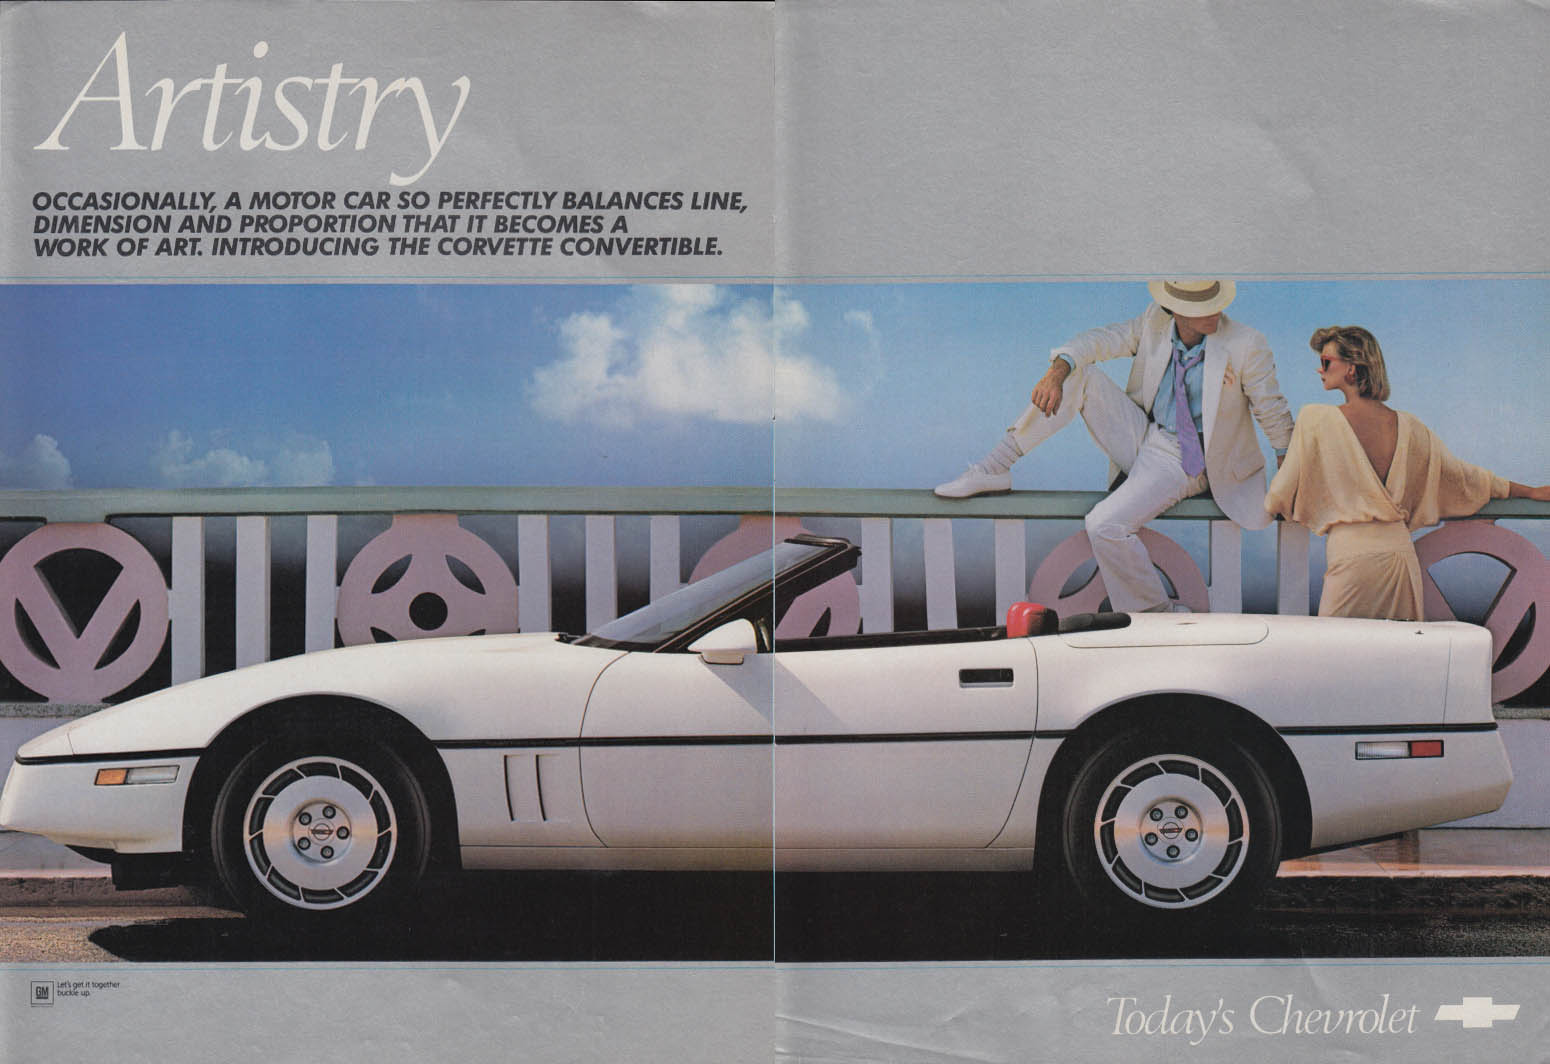 Artistry. Perfectly balances line dimension & proportion Corvette ad 1986